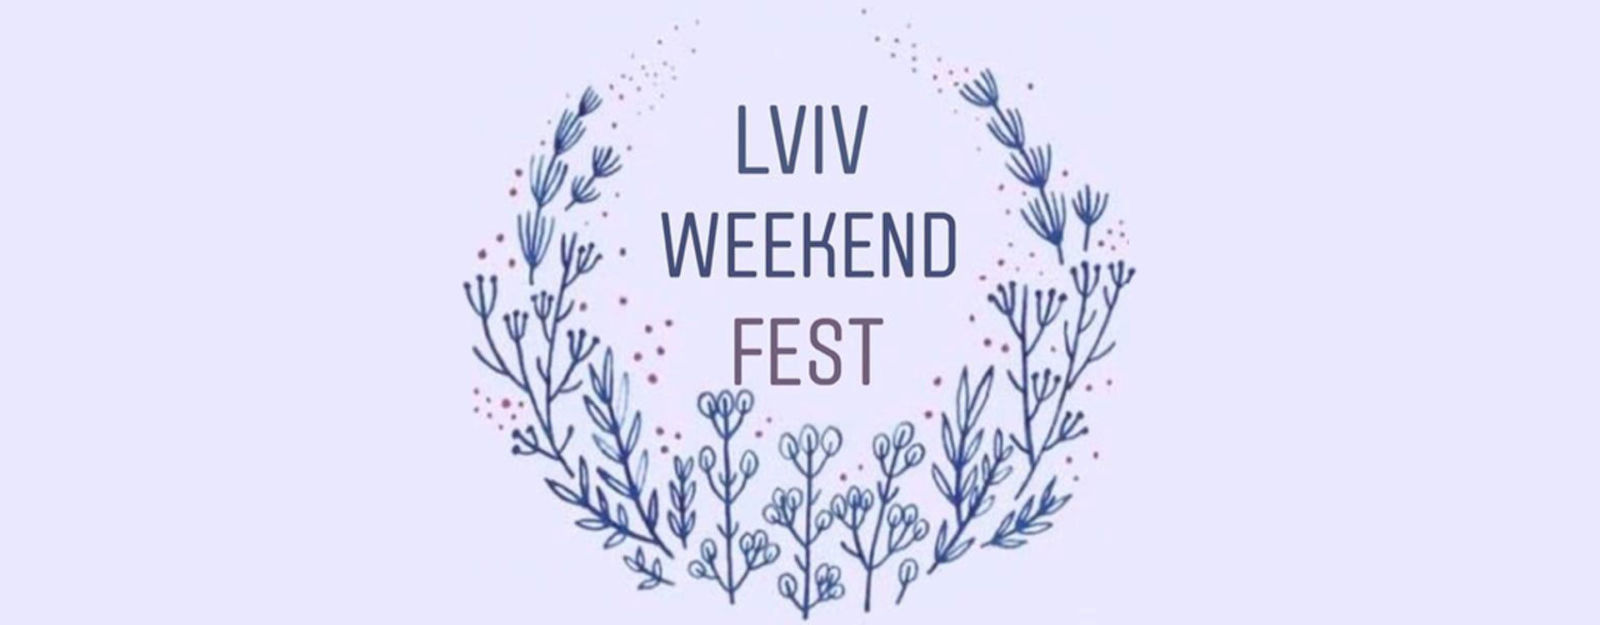 "Фестиваль ""LVIV WEEKEND FEST"""